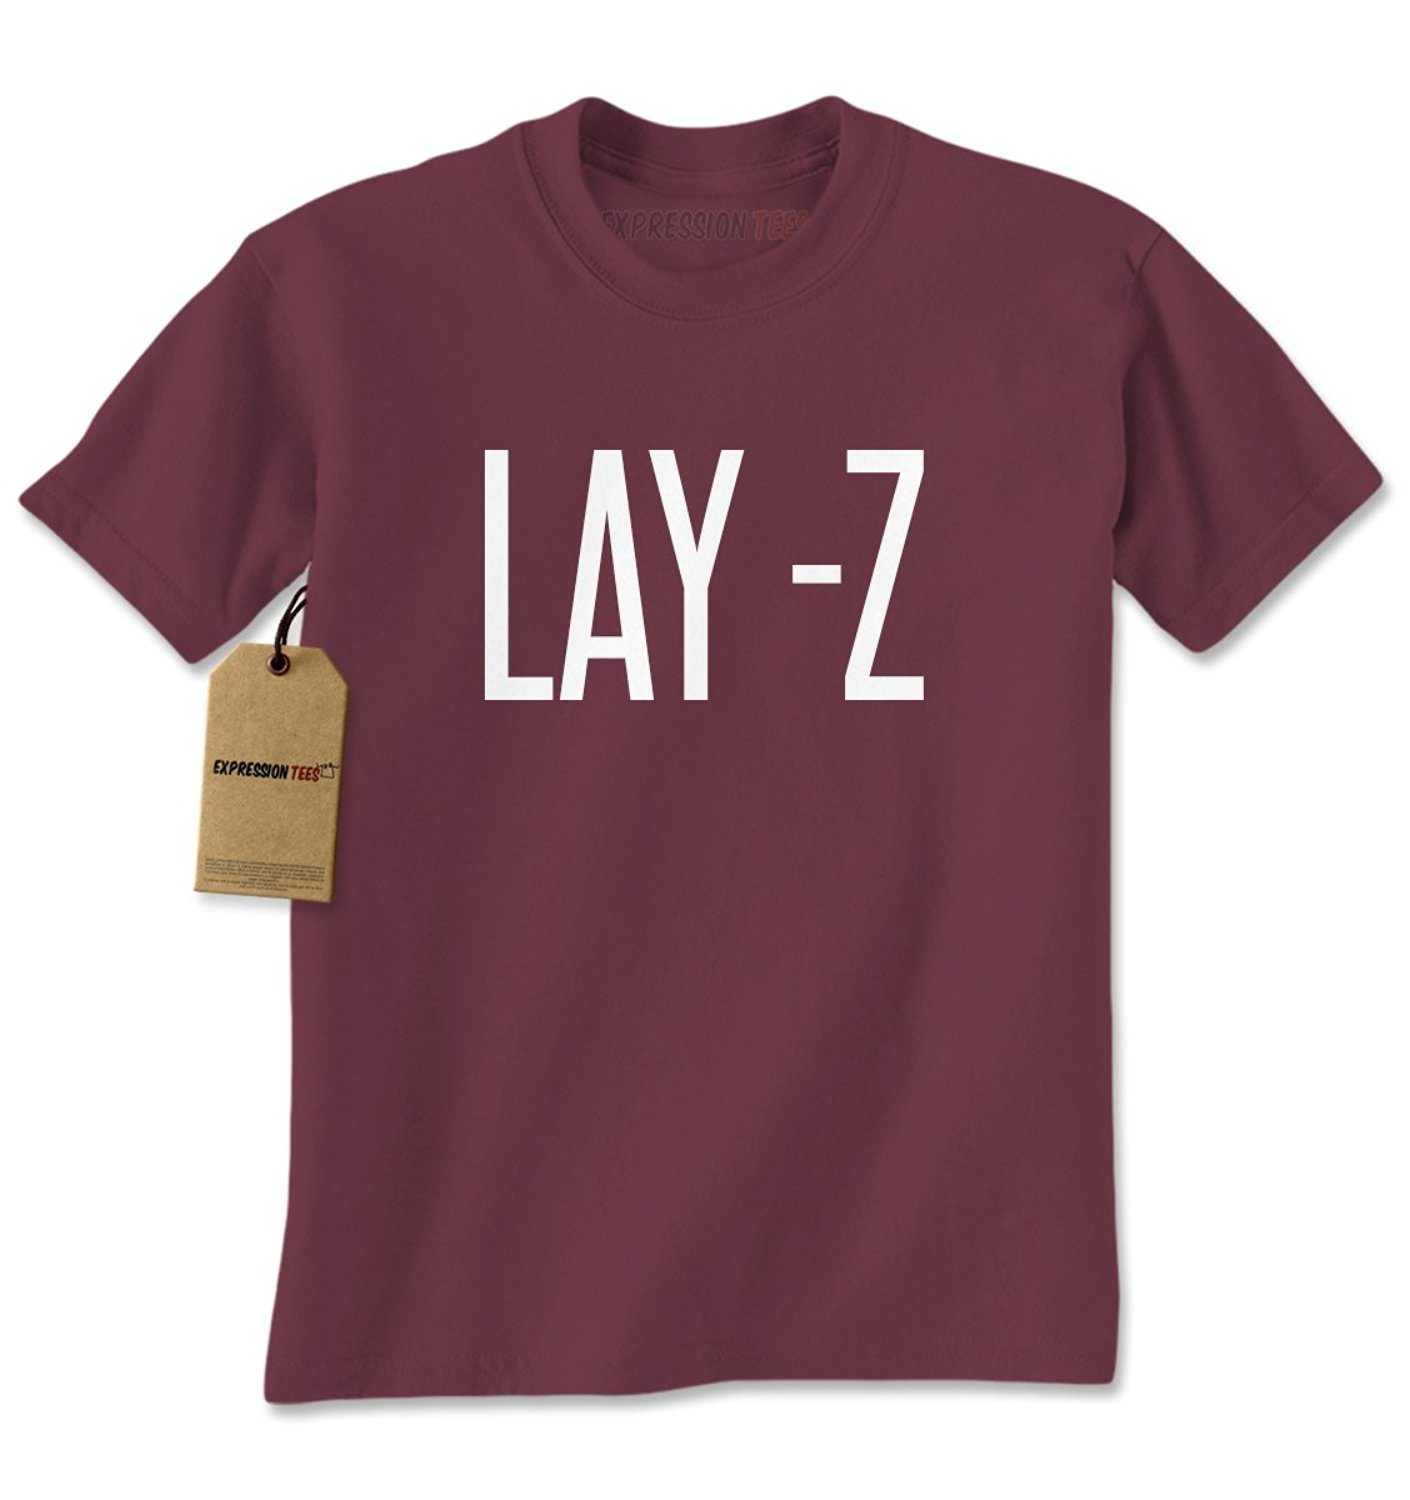 Expression Tees Lay-Z Mens